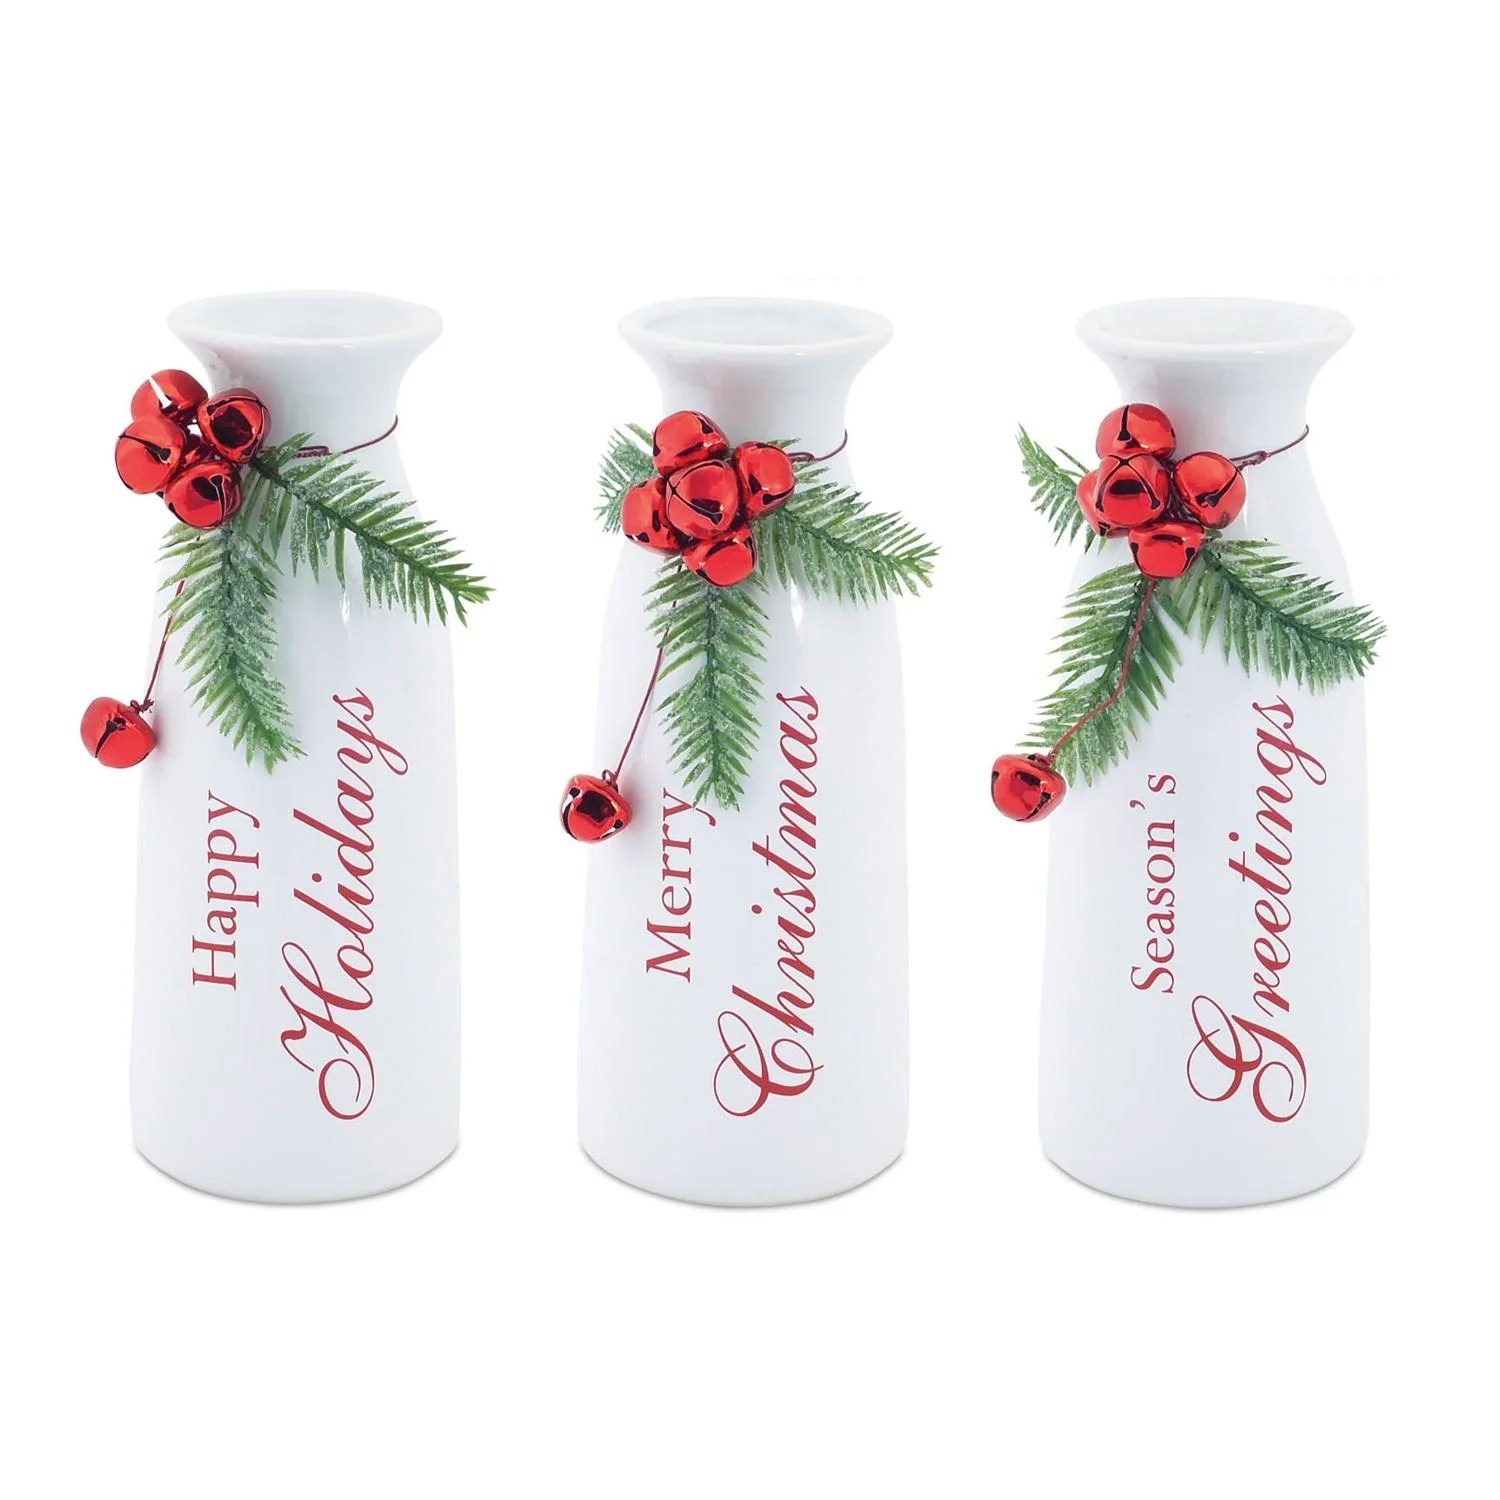 Milk Bottles For Decoration Set Of 3 White Milk Bottle Christmas Decorations With Jingle Bells 9